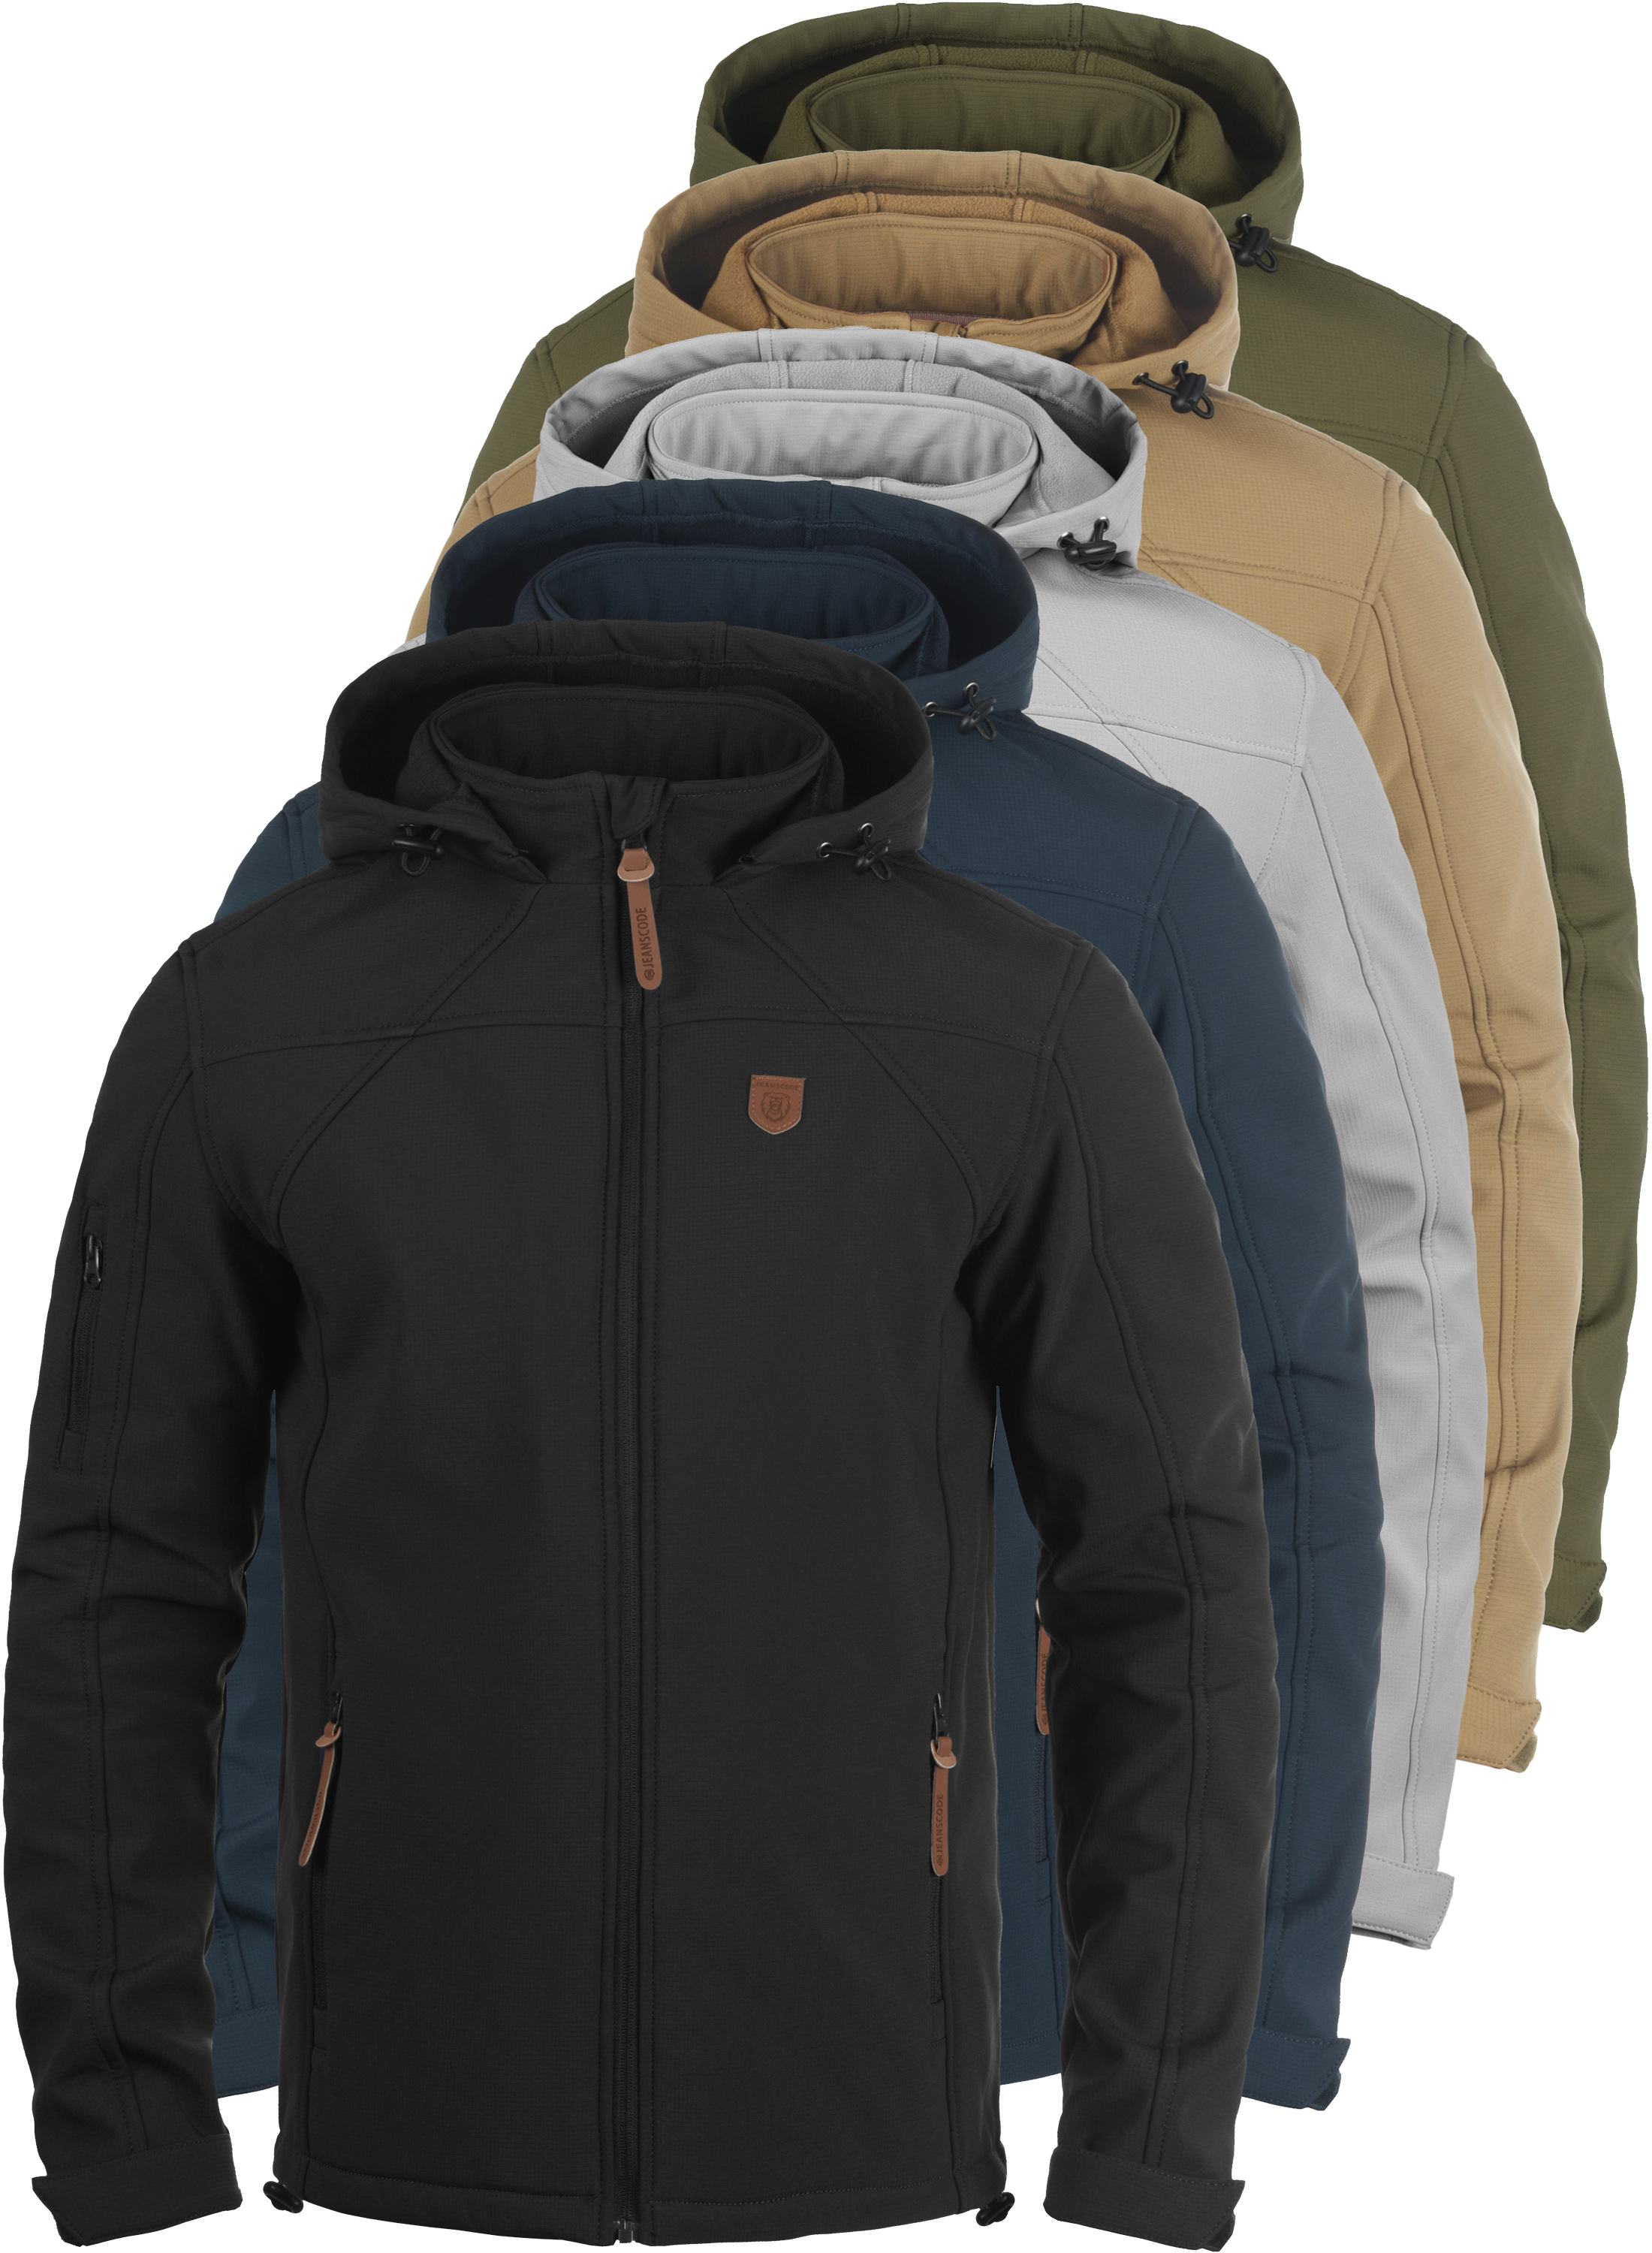 Original Jonas Details Jacket Title Transition Indicode About Show Outdoor New Mens Hooded Softshell vw8mn0N